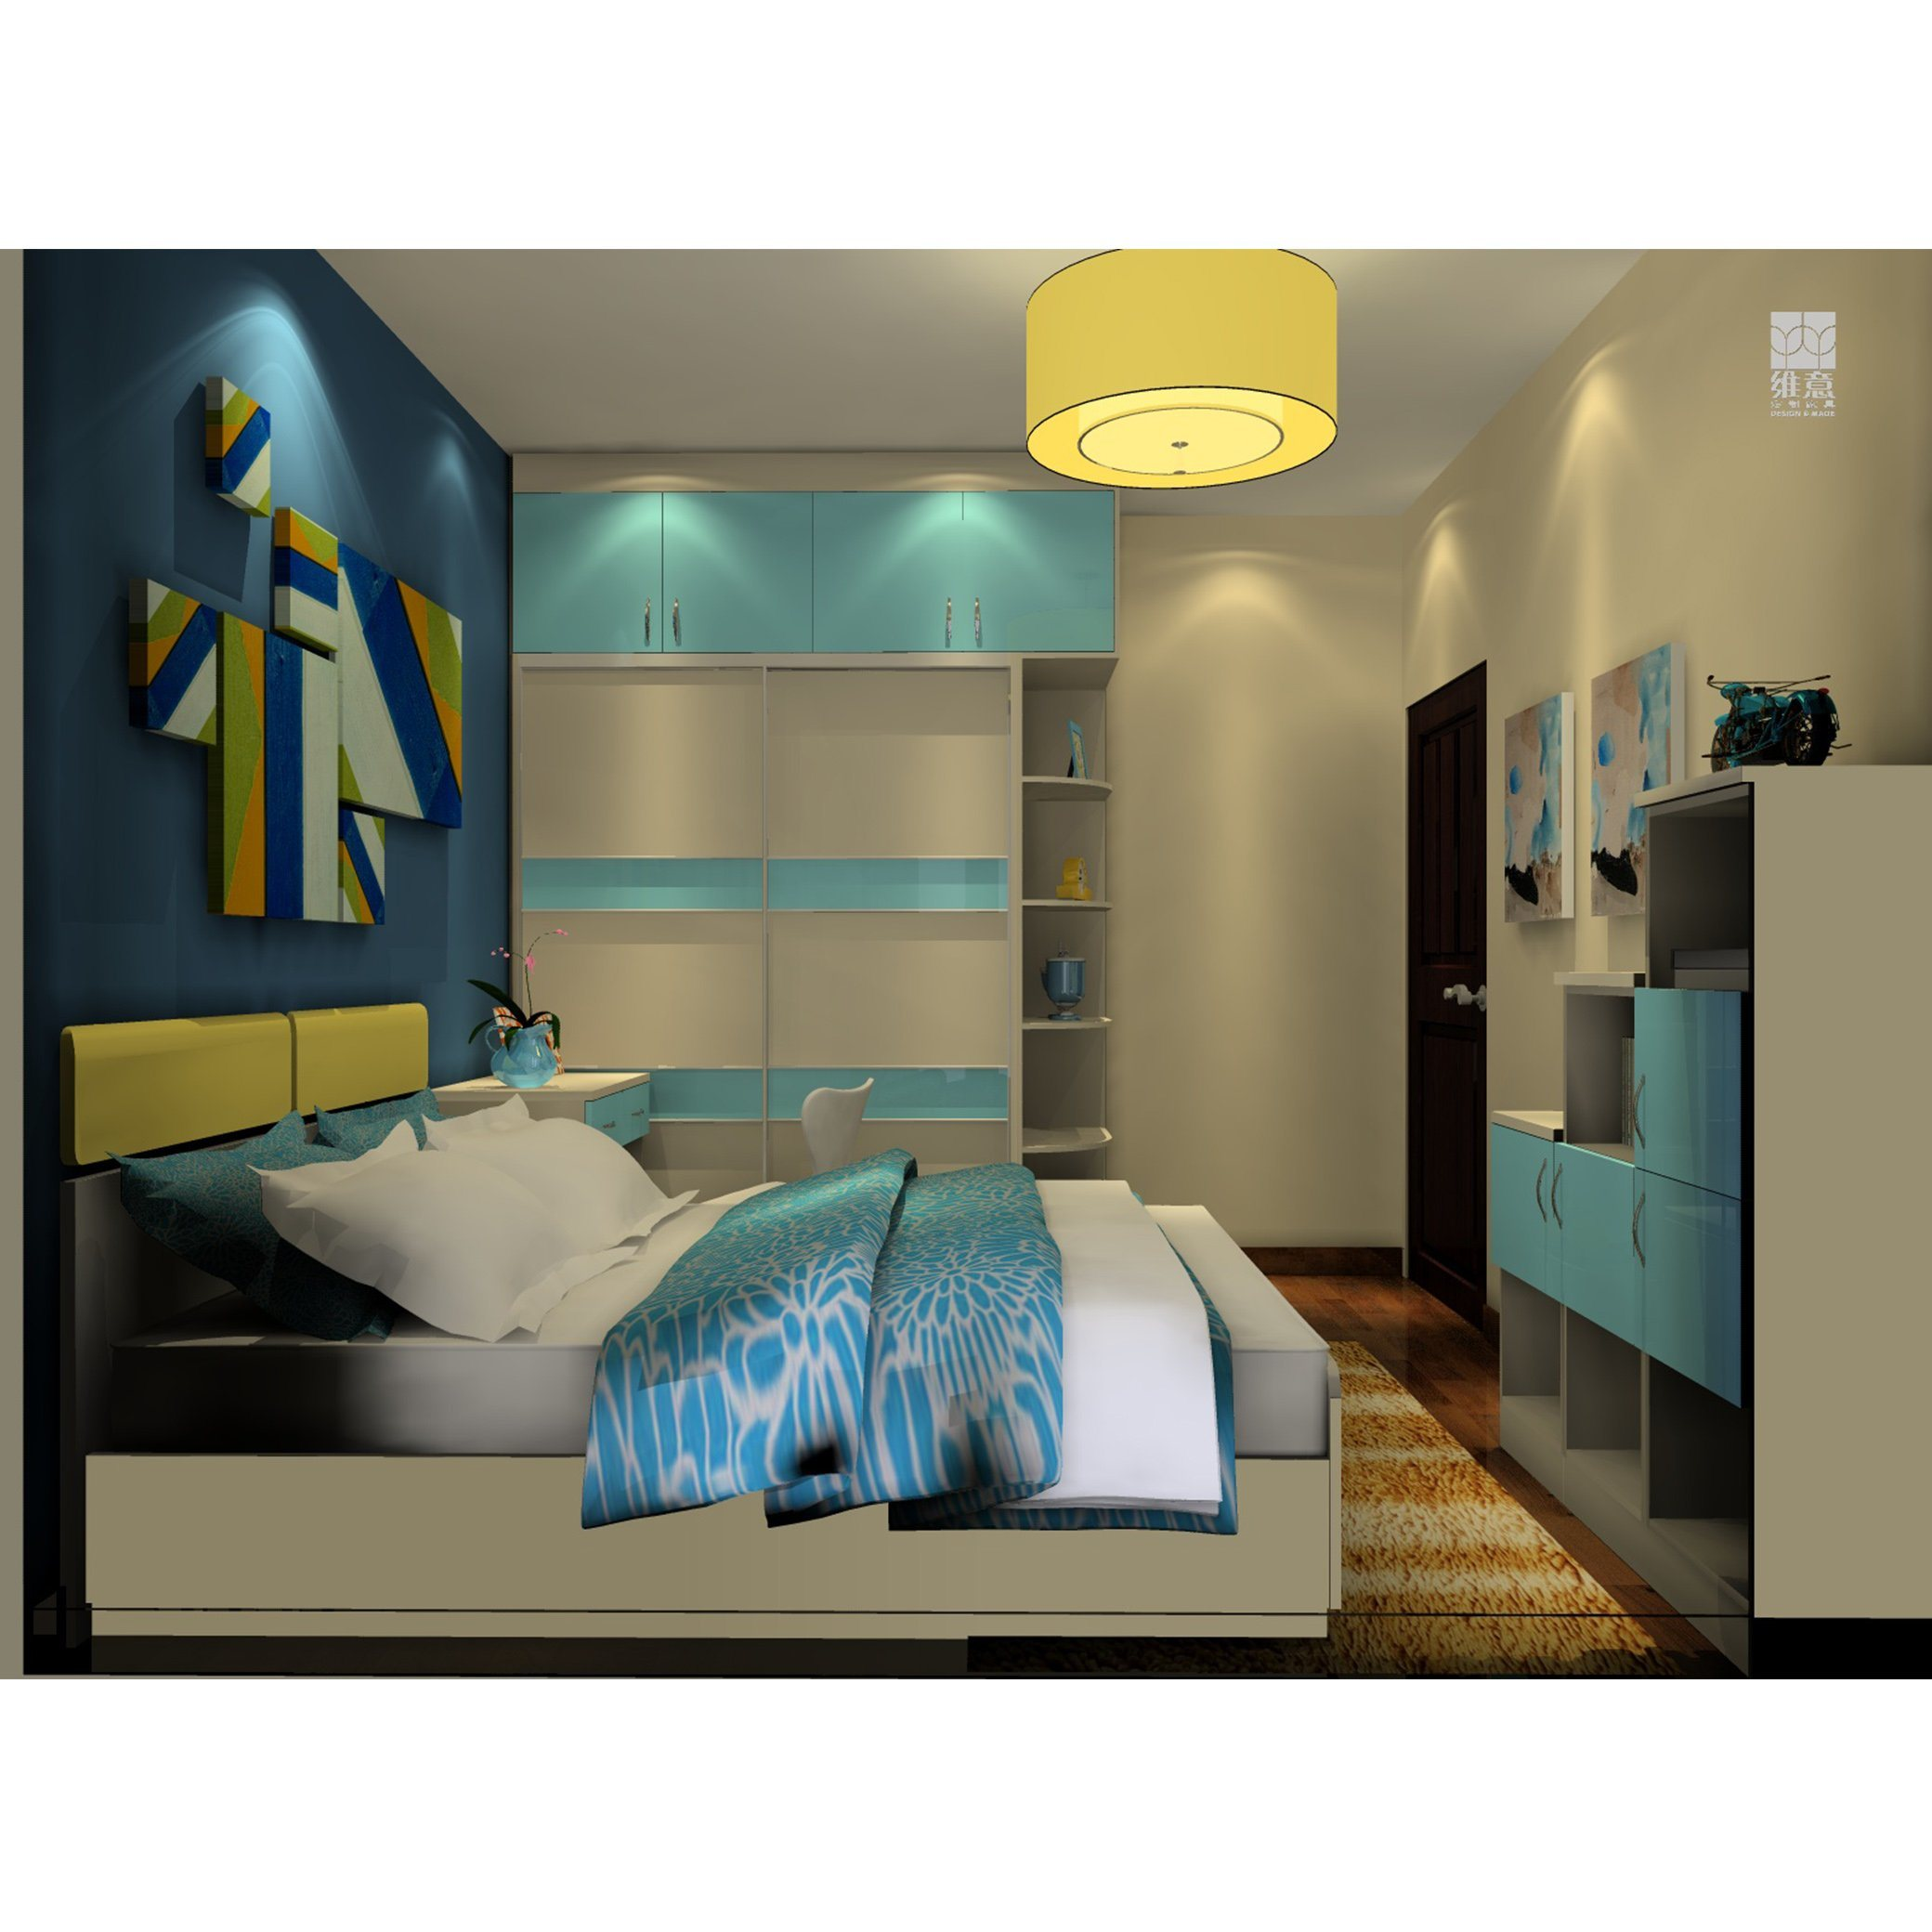 Home Design White and Blue Lacquer Color Contrast Sliding Wardrobe